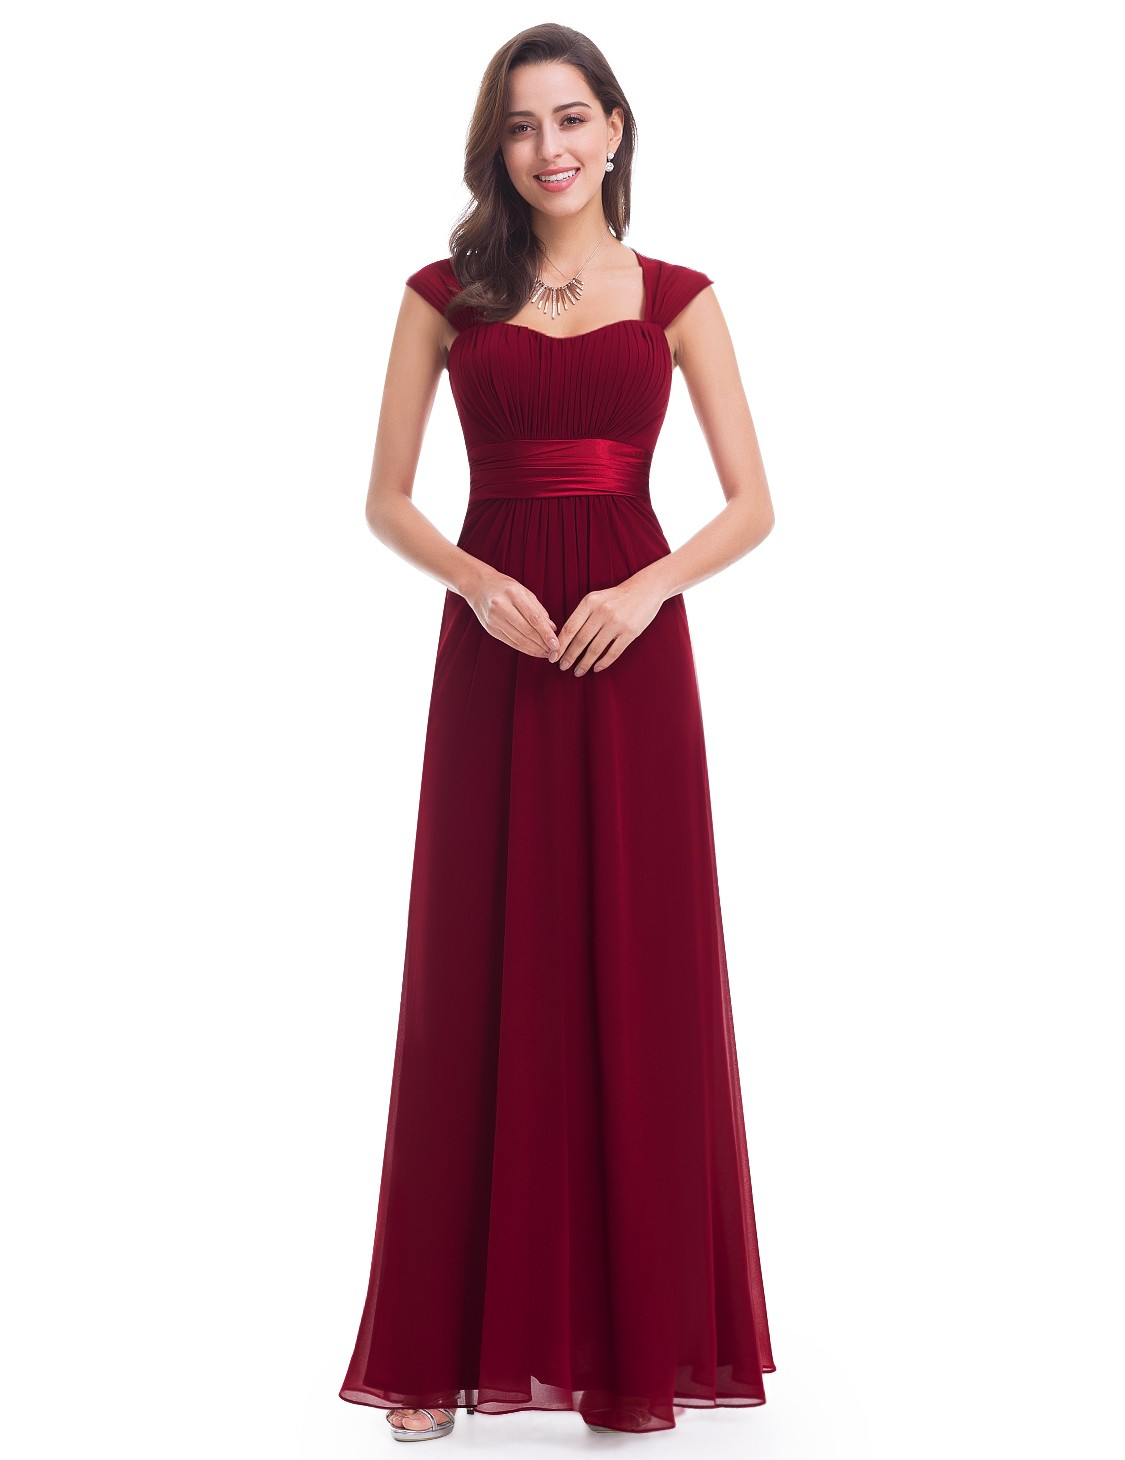 floor length dress sleeveless floor length evening dress with empire waist SDXDDTM